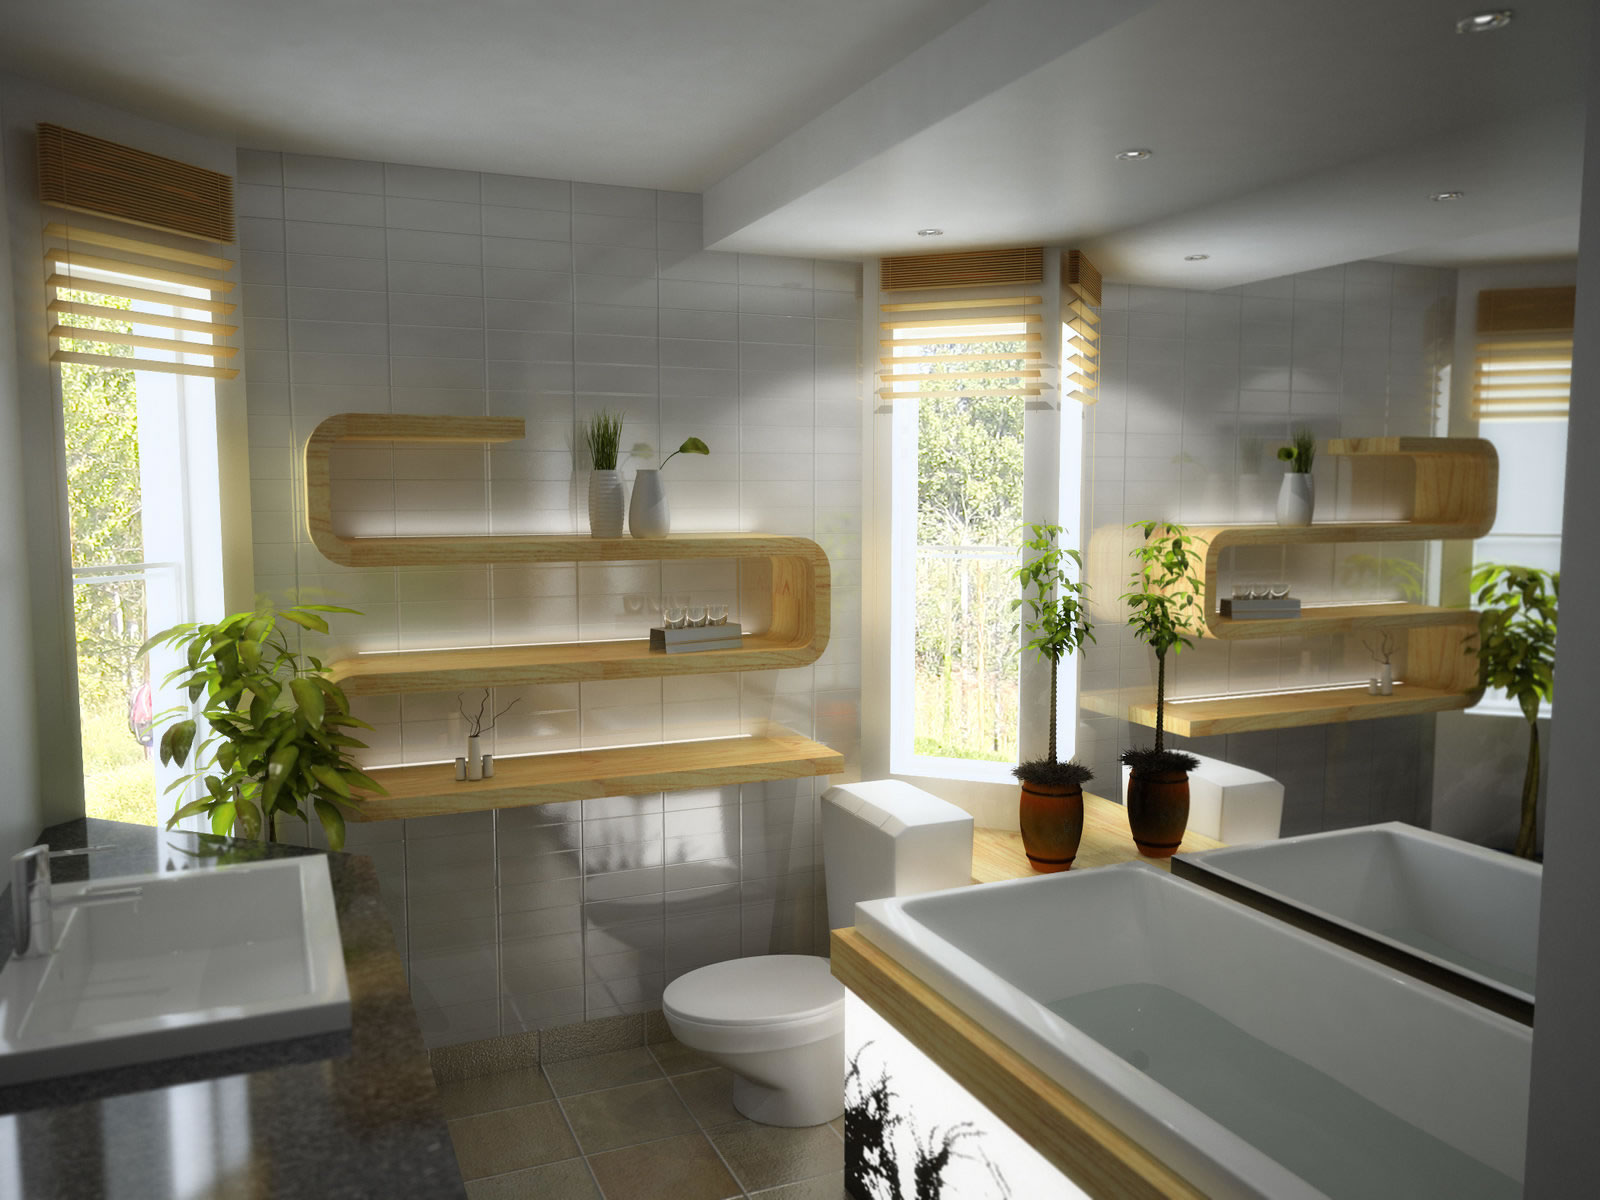 House To Home Bathroom Ideas Home Bathroom Ideas Large